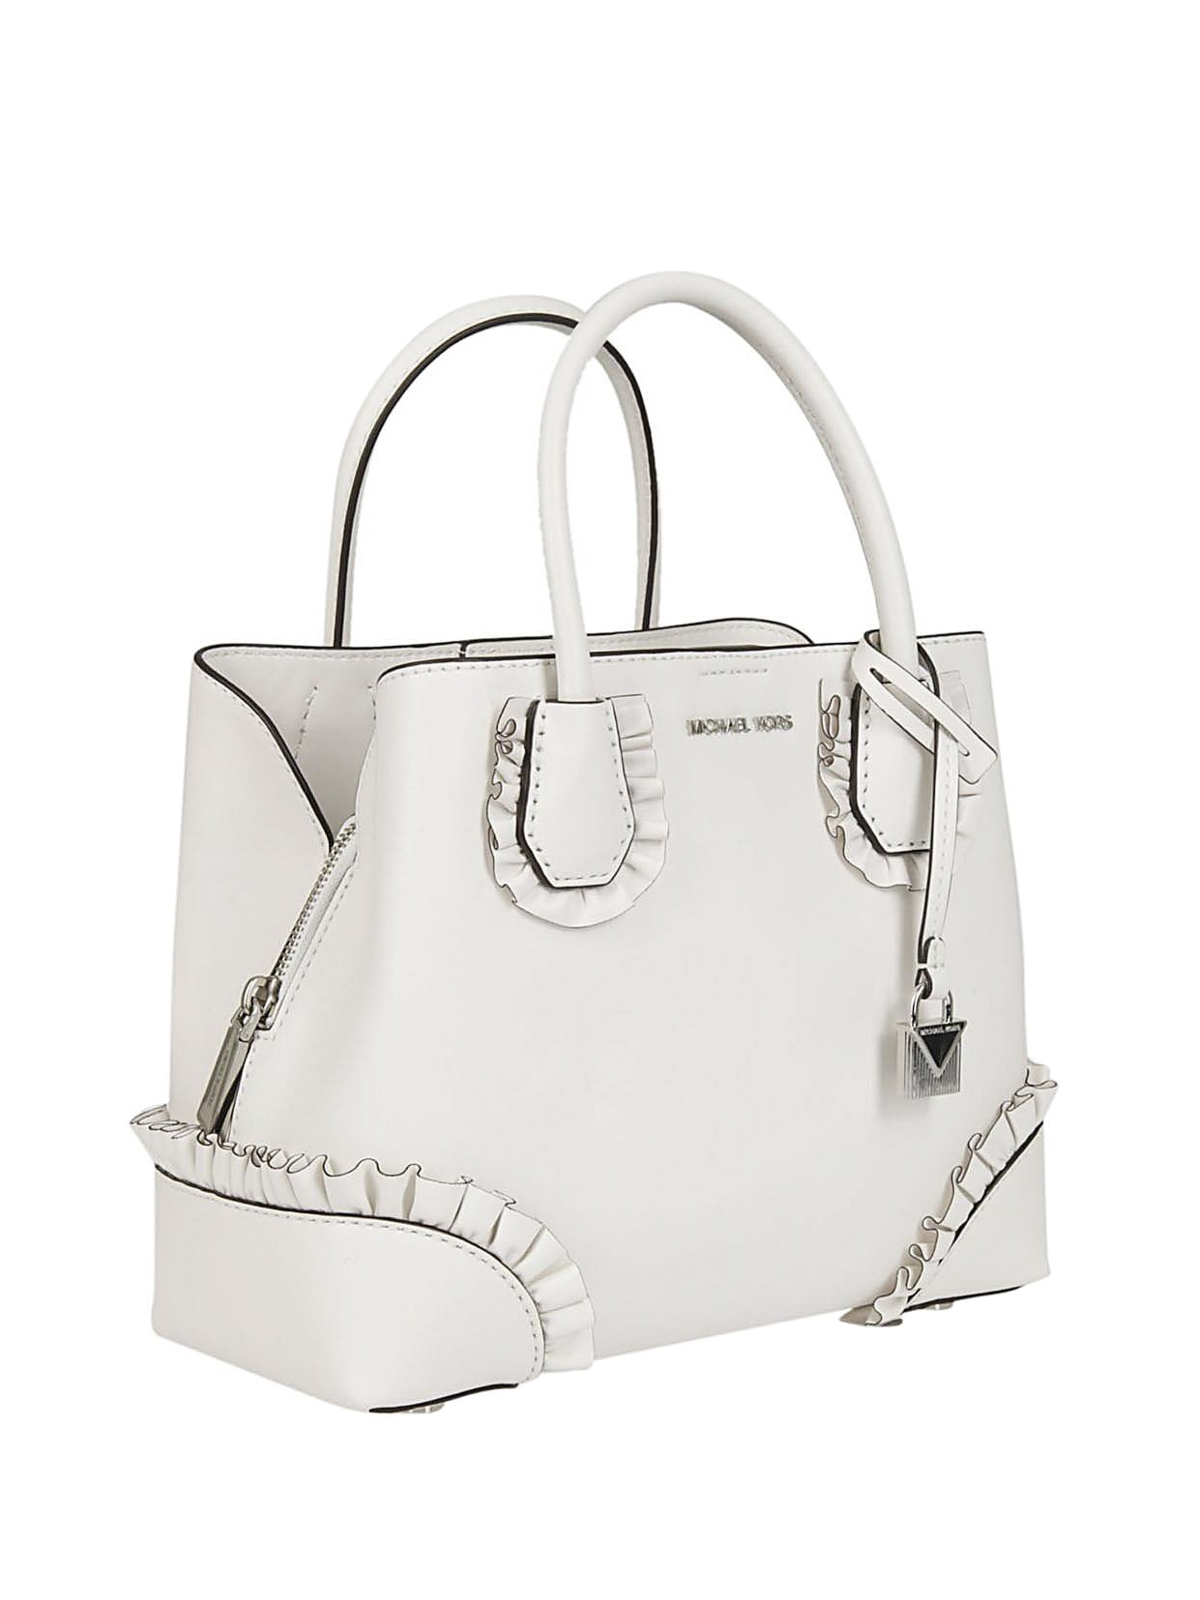 michael kors mercer gallery small white bag totes bags. Black Bedroom Furniture Sets. Home Design Ideas